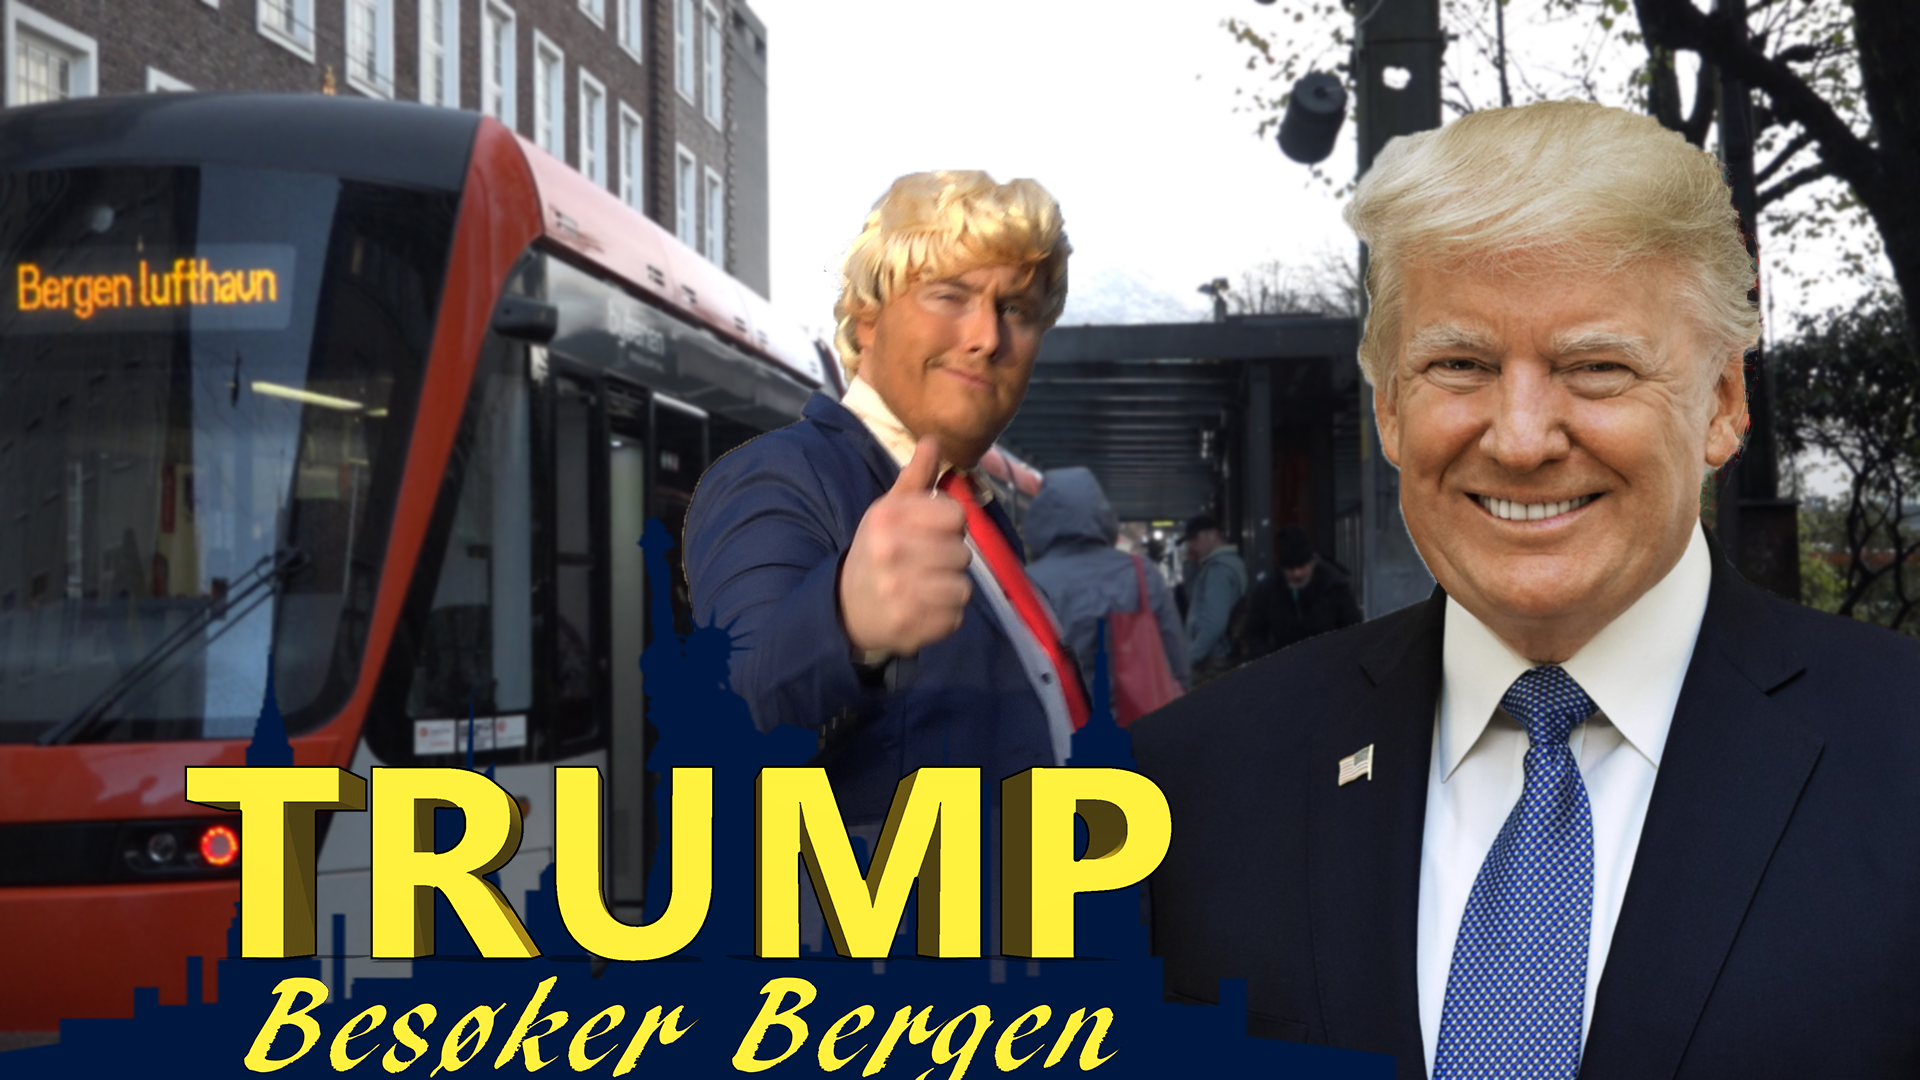 Trump Besøker Bergen: Trump's Train Track Adventures